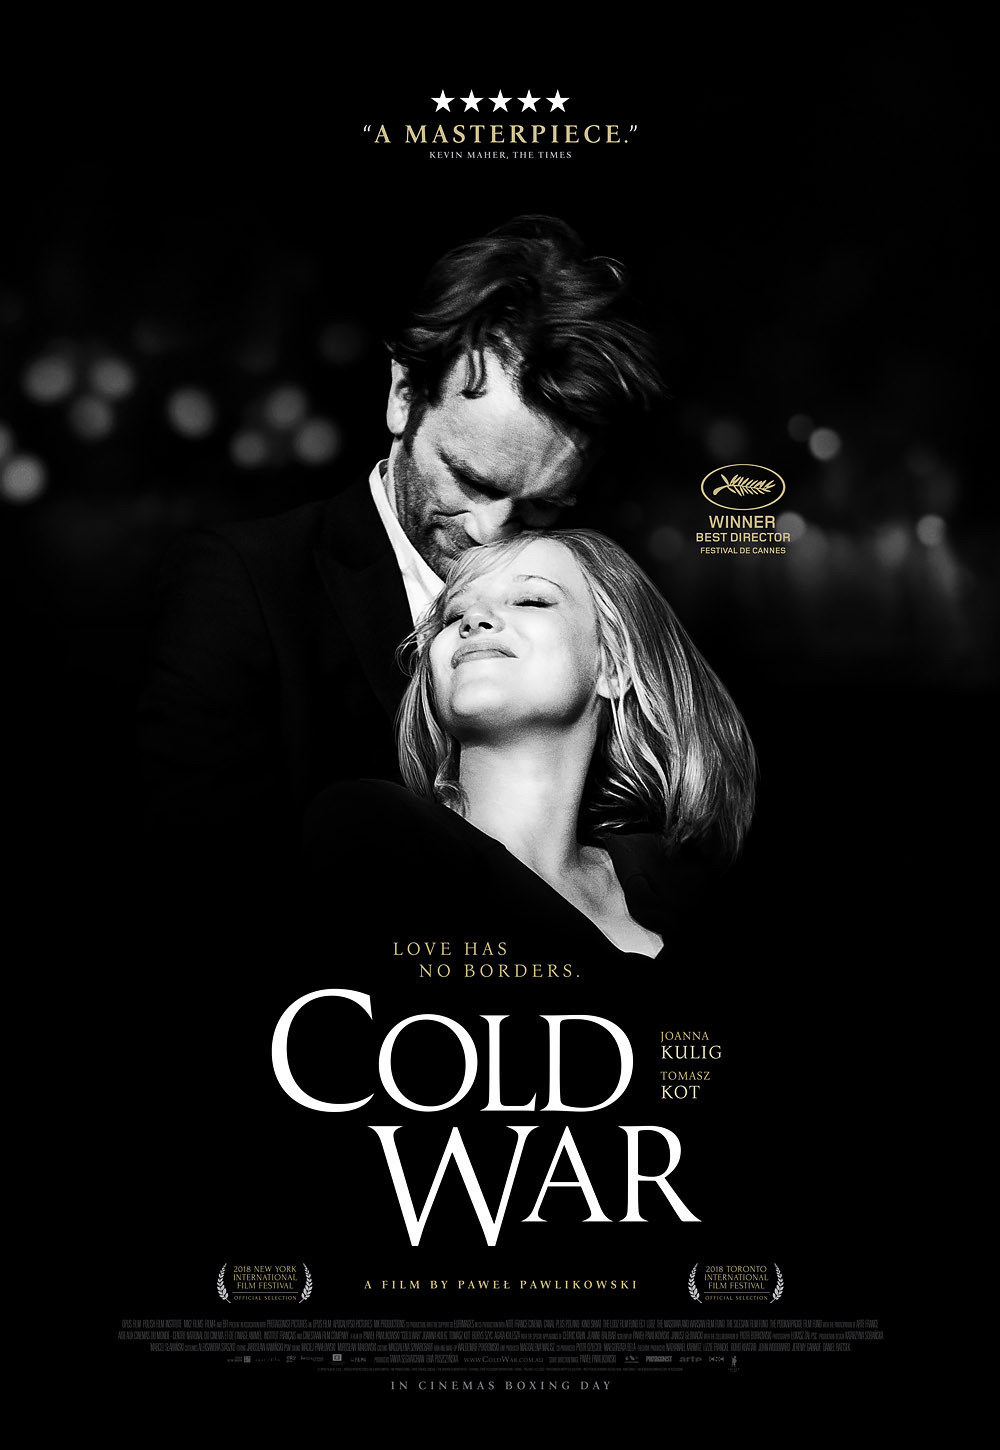 Cold War 2018 movie poster